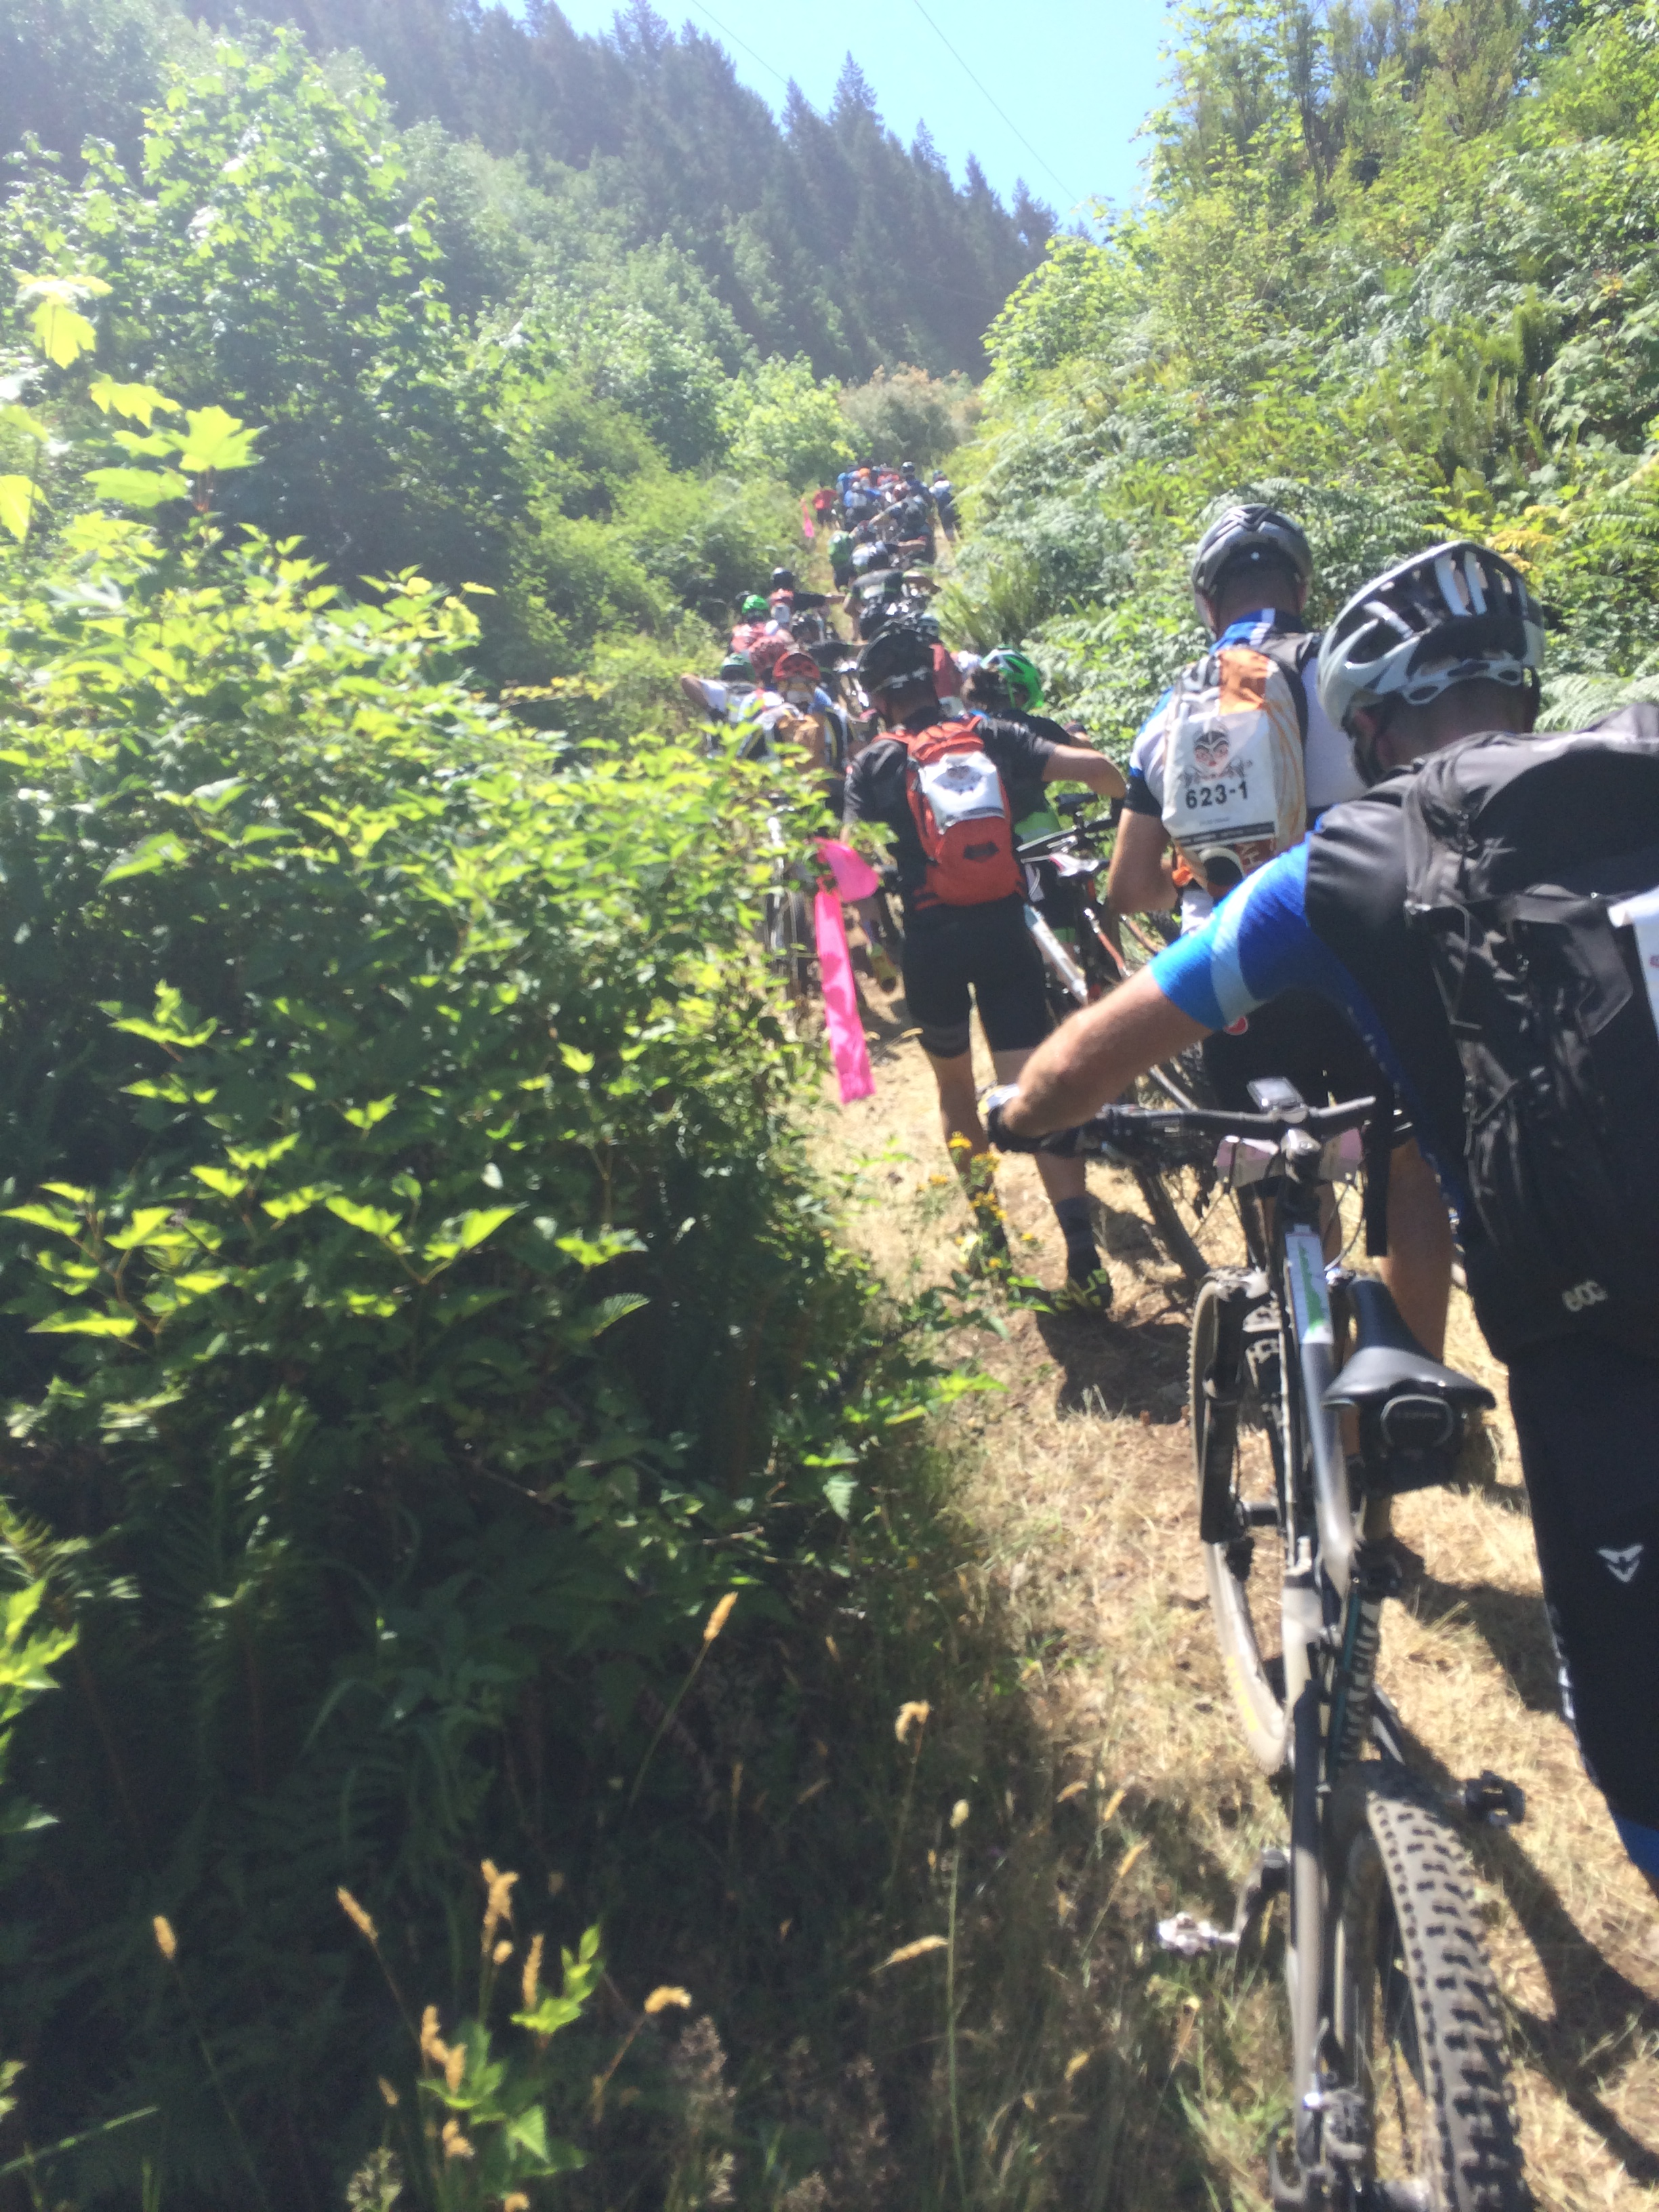 BC Bike Race hike-a-bike traffic jam in 100-degree heat.